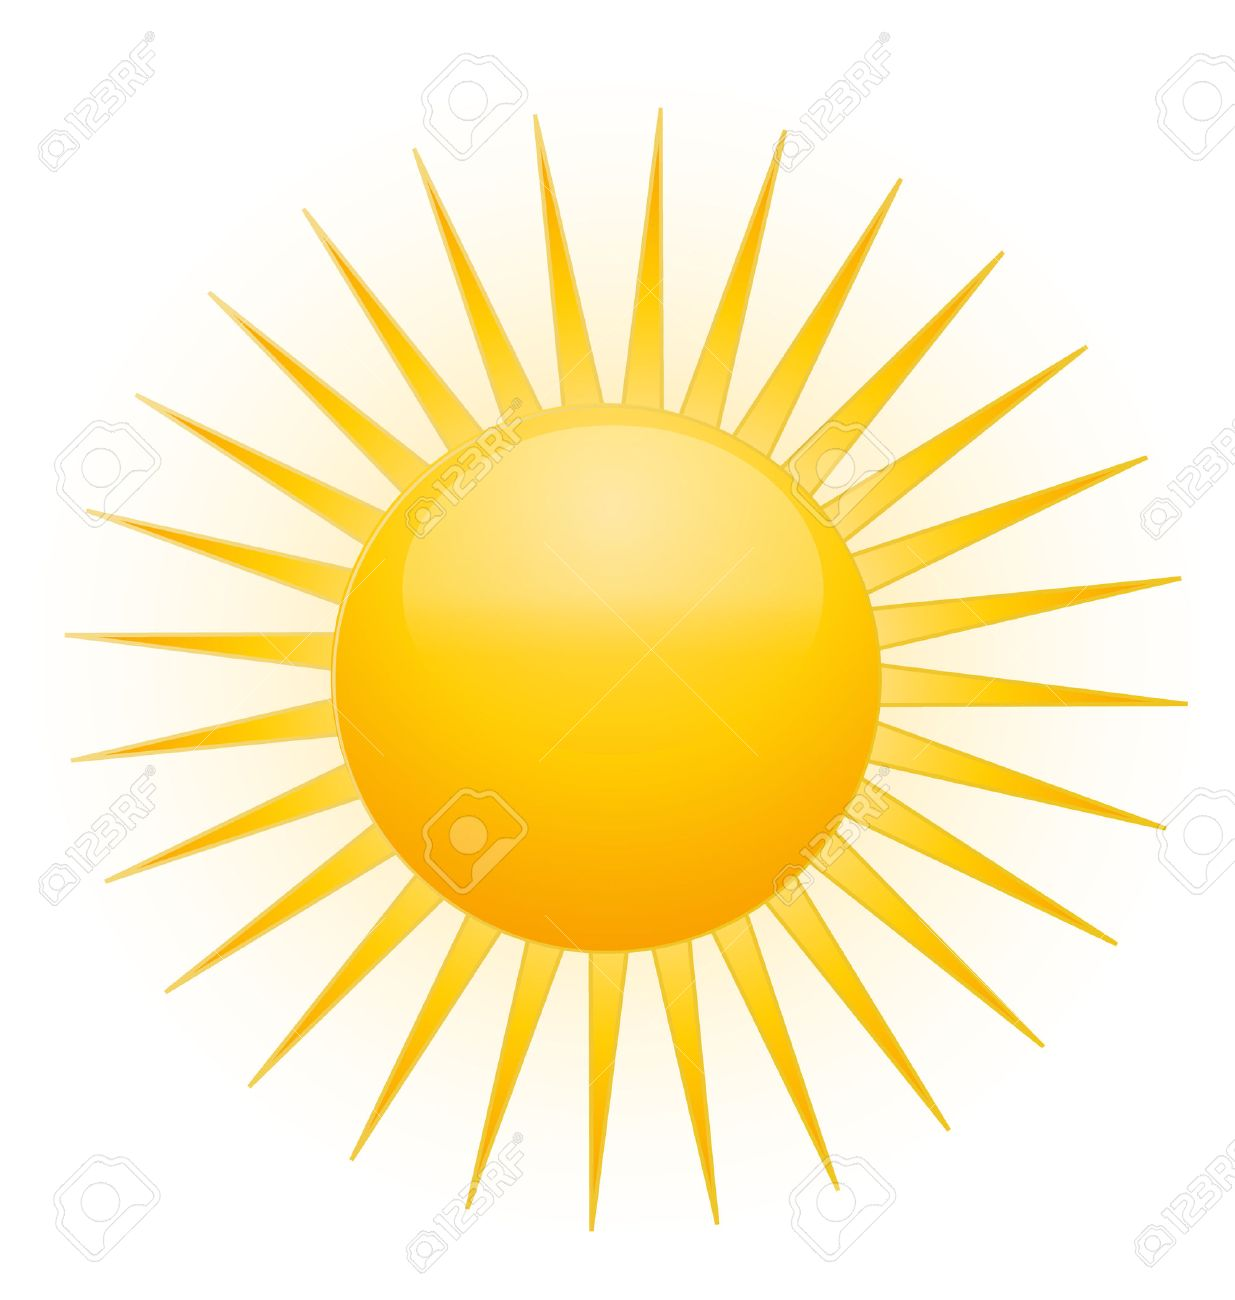 Sun Stock Photos Royalty Free Sun Images